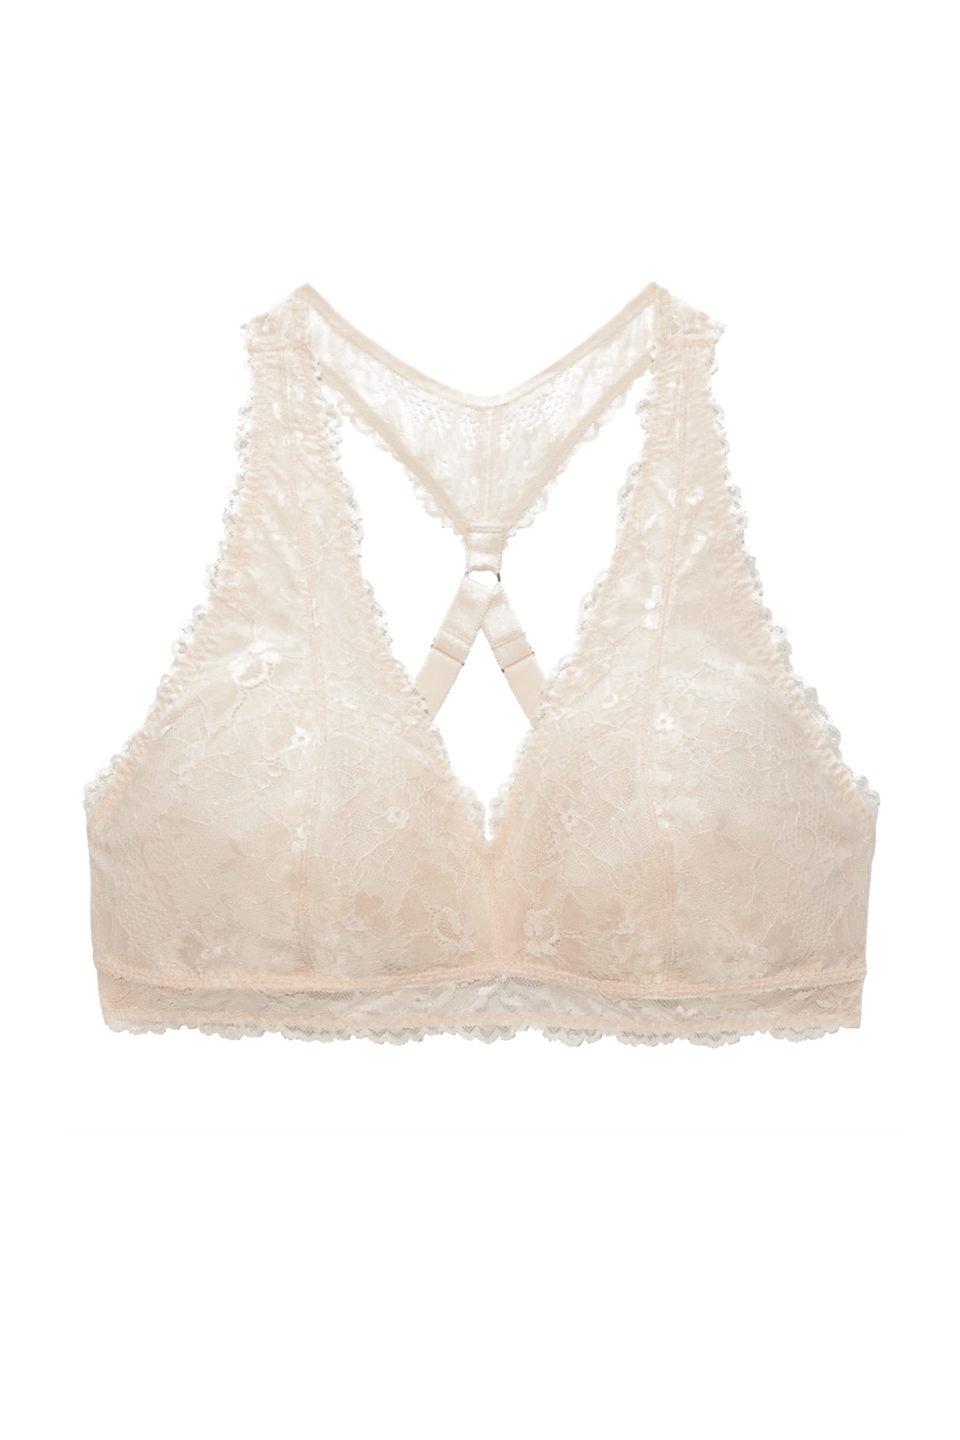 "<p><strong>Savage X Fenty</strong></p><p>savagex.com</p><p><strong>$38.00</strong></p><p><a href=""https://go.redirectingat.com?id=74968X1596630&url=https%3A%2F%2Fwww.savagex.com%2Fshop%2Ffloral-lace-bralette-bb1934840-2454-8911420%3FisClickFromPdp%3Dtrue&sref=https%3A%2F%2Fwww.marieclaire.com%2Ffashion%2Fg32869396%2Fbest-bralettes%2F"" rel=""nofollow noopener"" target=""_blank"" data-ylk=""slk:SHOP IT"" class=""link rapid-noclick-resp"">SHOP IT</a></p><p>A racerback style is a good pick if you like sportier pieces. This option still maintains a sense of femininity thanks to the lace and adds a hint of sultriness with the plunging neckline fit. The bralette is unlined, but has tulle lined cups for support and features adjustable elastic straps. <br></p>"